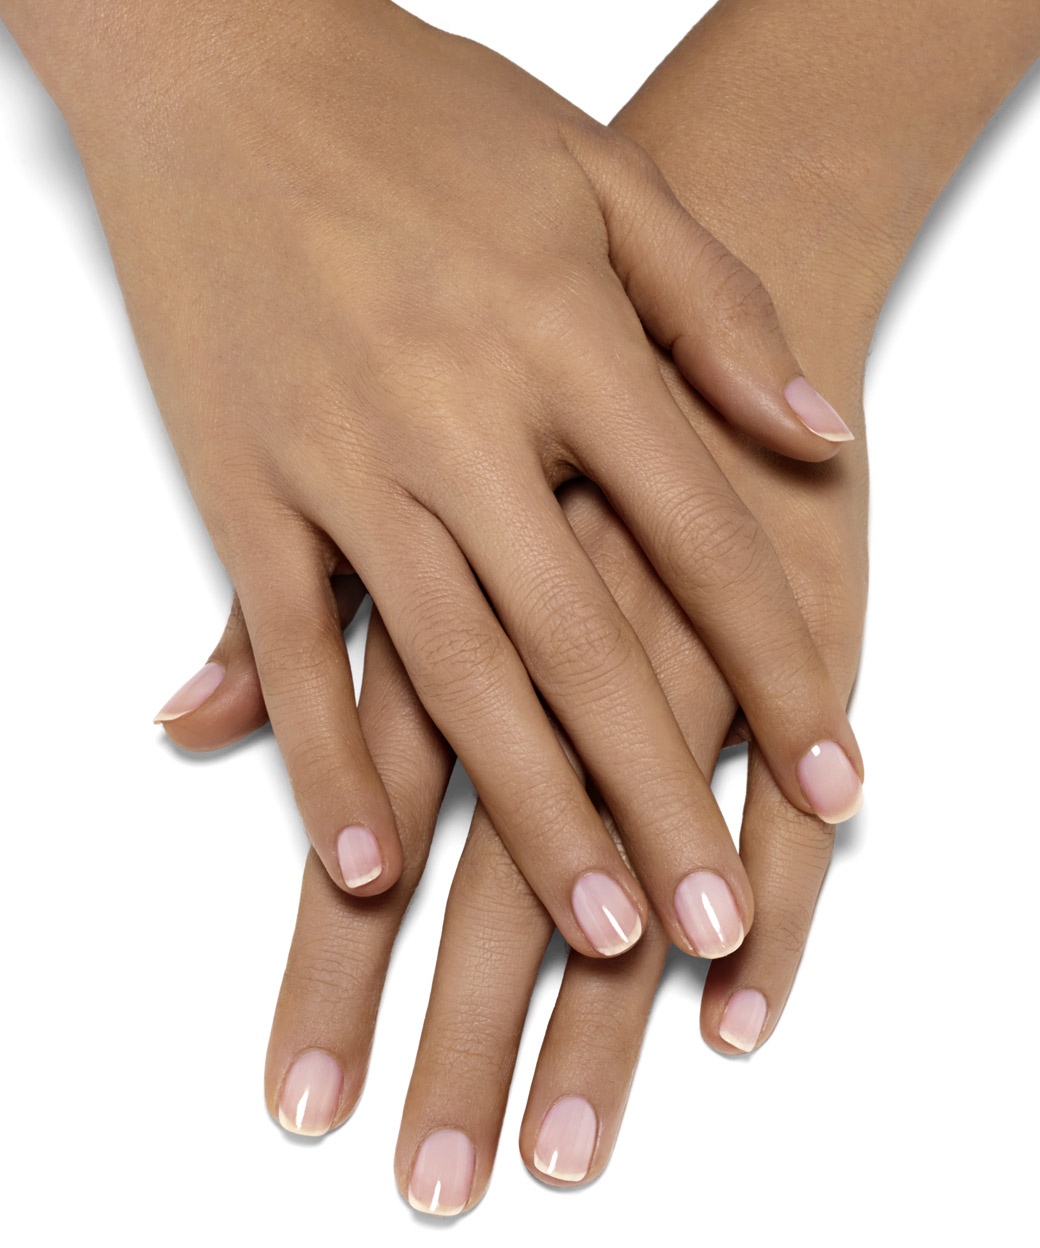 Sugar Daddy by Essie was used in this subtle French manicure with a squoval nail shape…perfection!